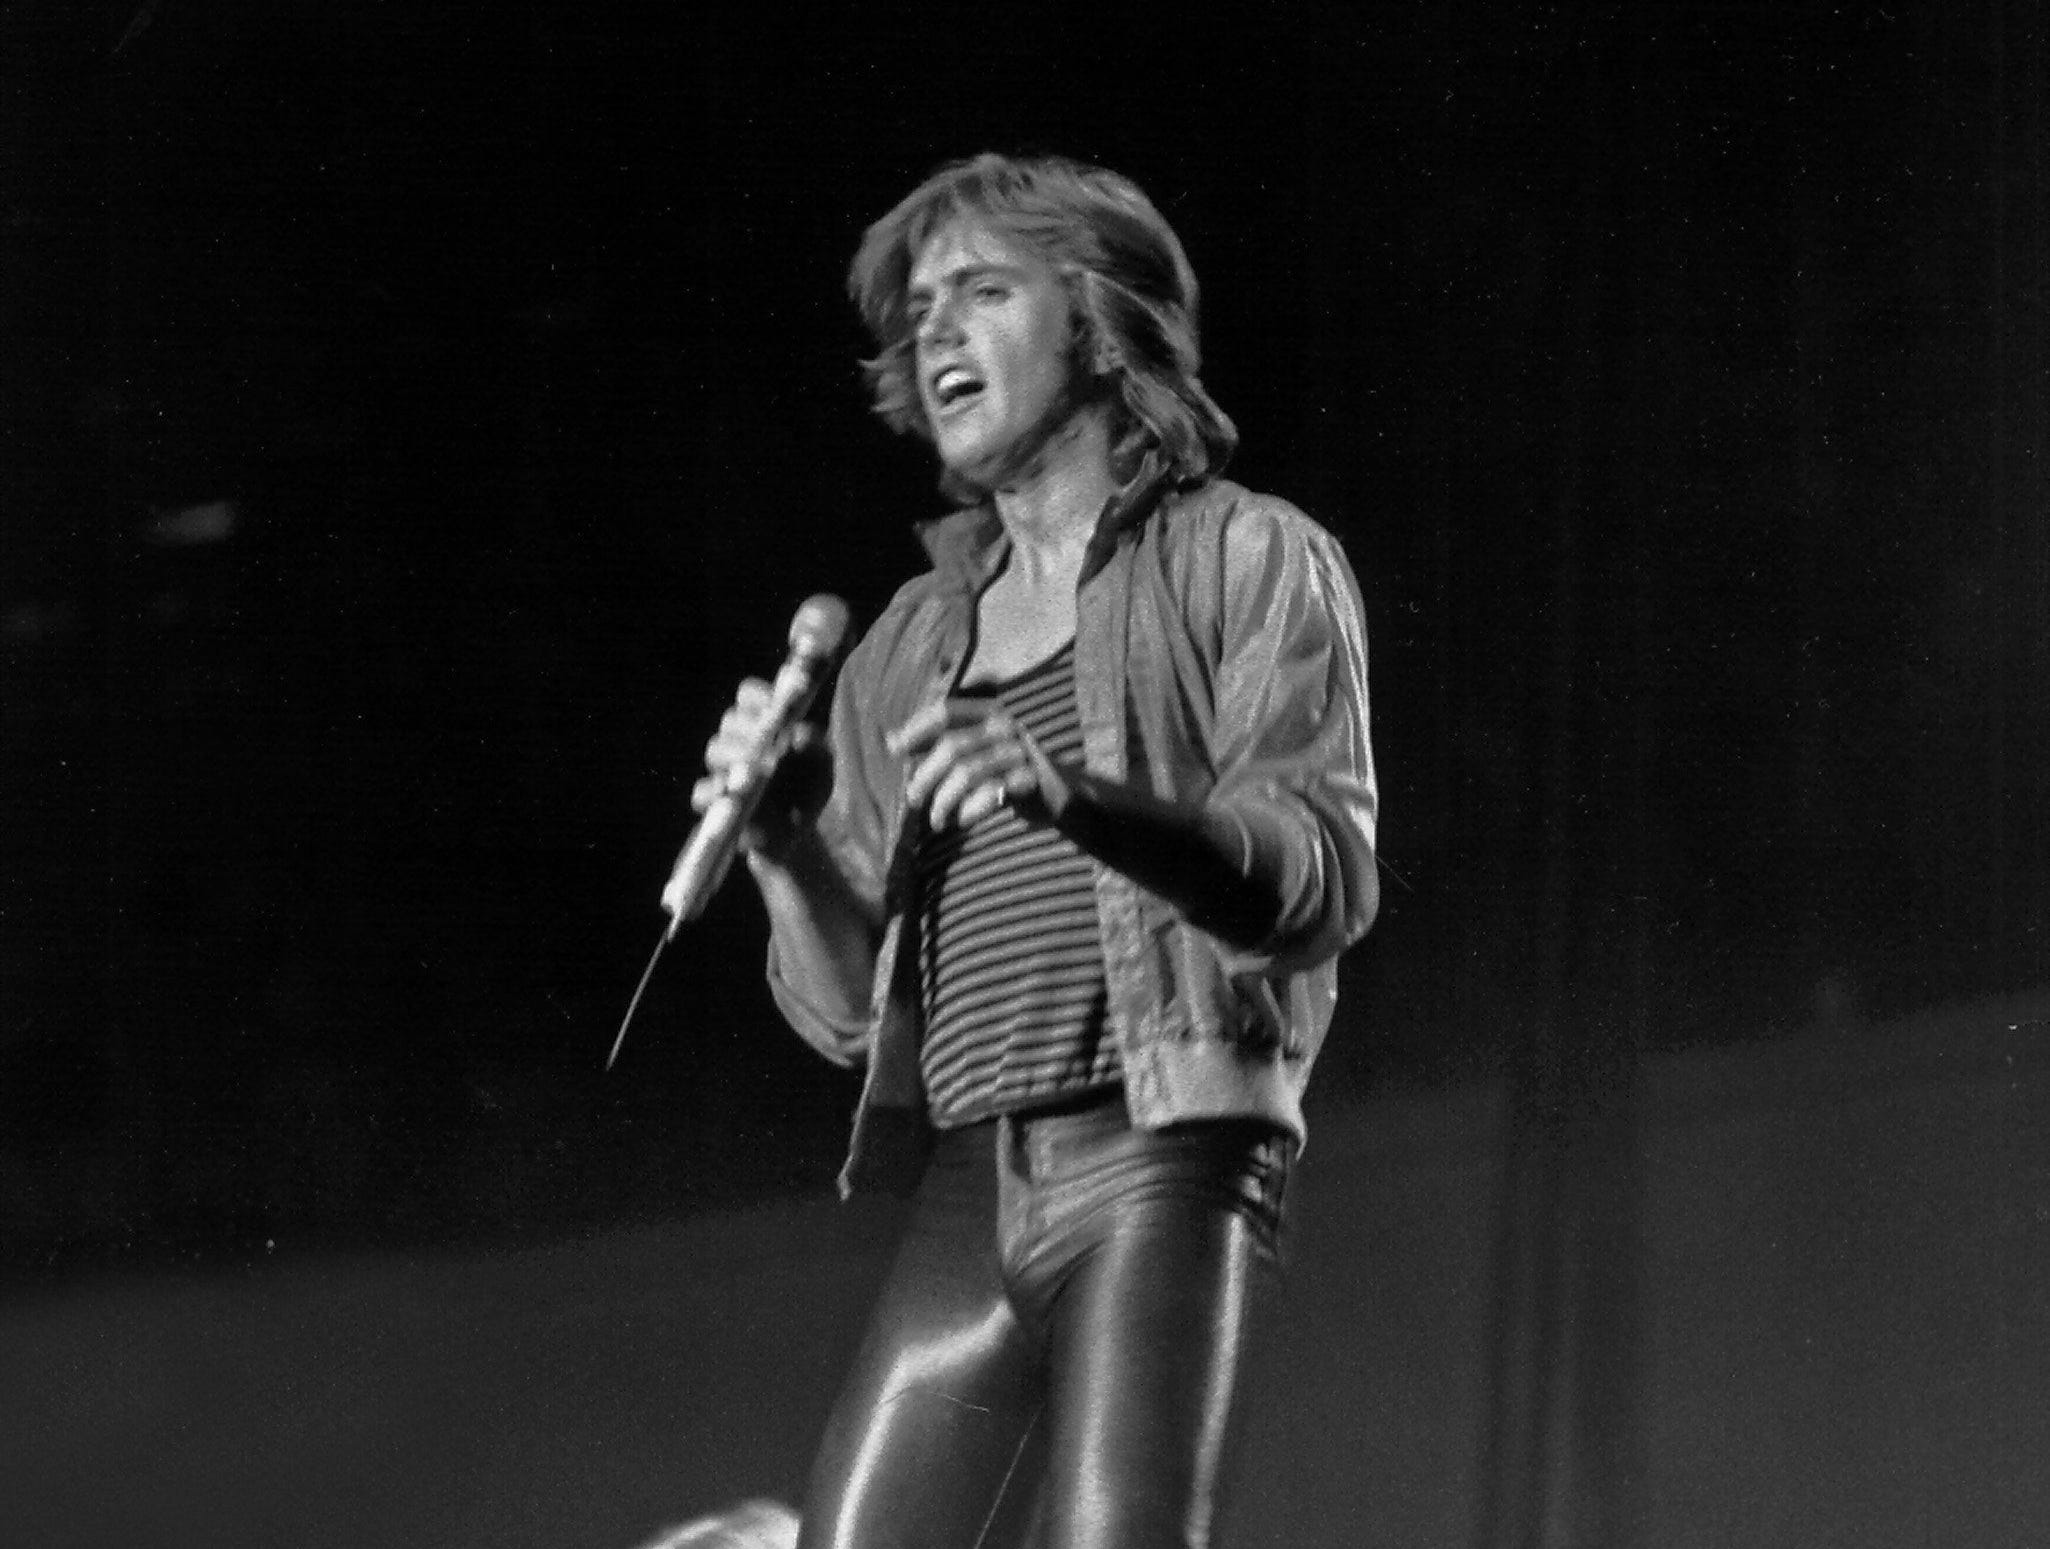 Teenage rock idol Shaun Cassidy brought an estimated 9,000 screaming fans to their feet at the Mid-South Coliseum on Aug. 7, 1979.